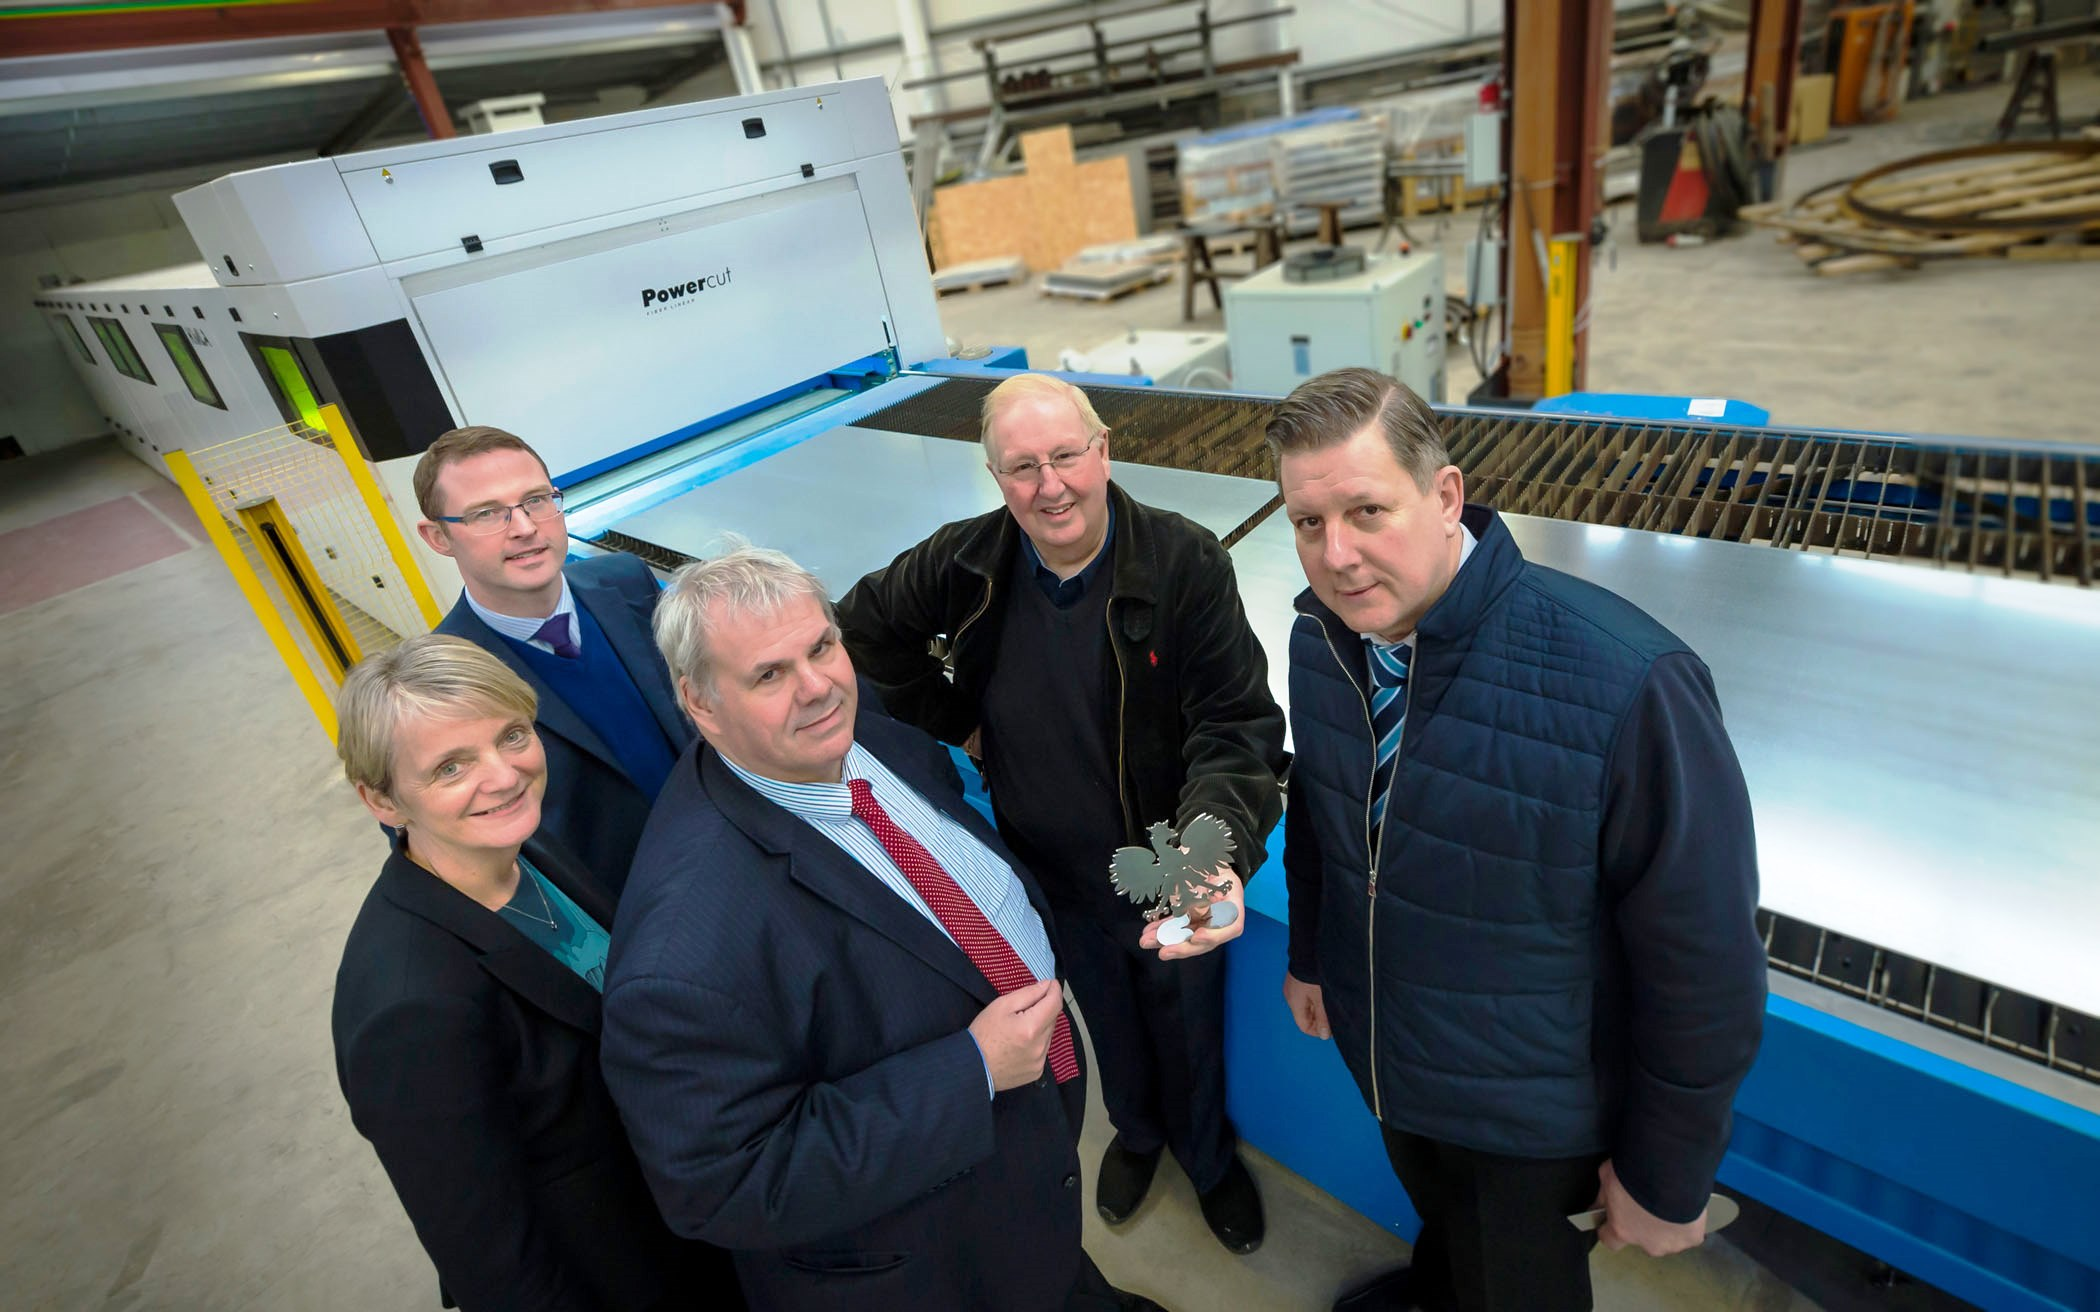 Image: Cutting edge: metal cutting company booming following council grant